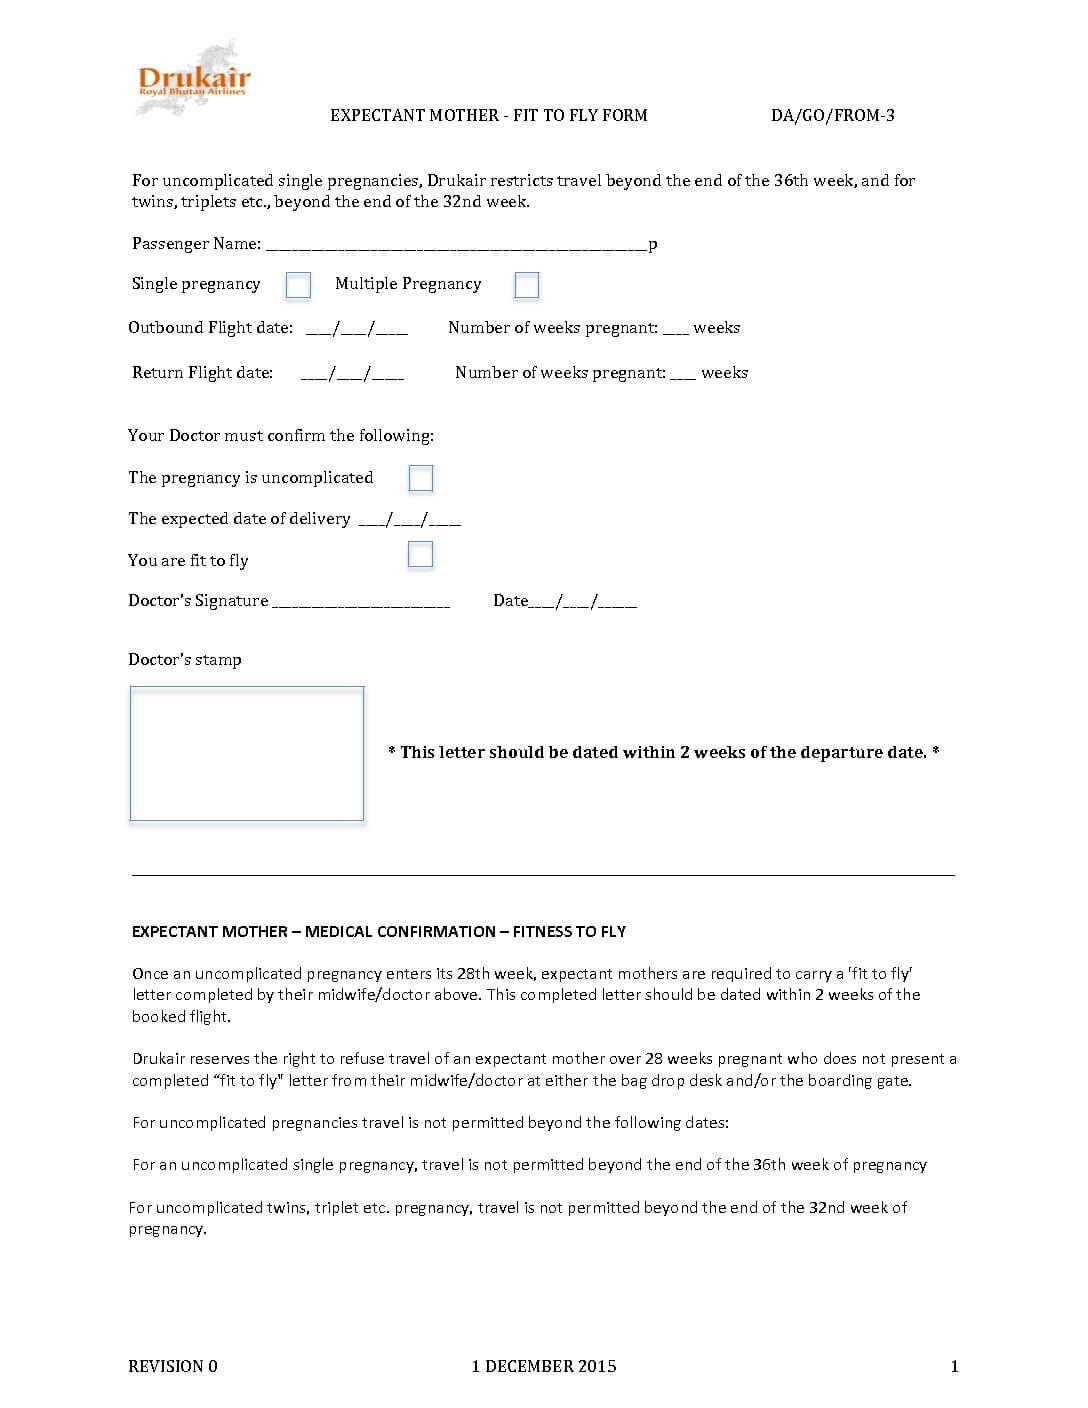 Drukair Fit To Fly Certificate For Pregnant (Expactant)  With Fit To Fly Certificate Template